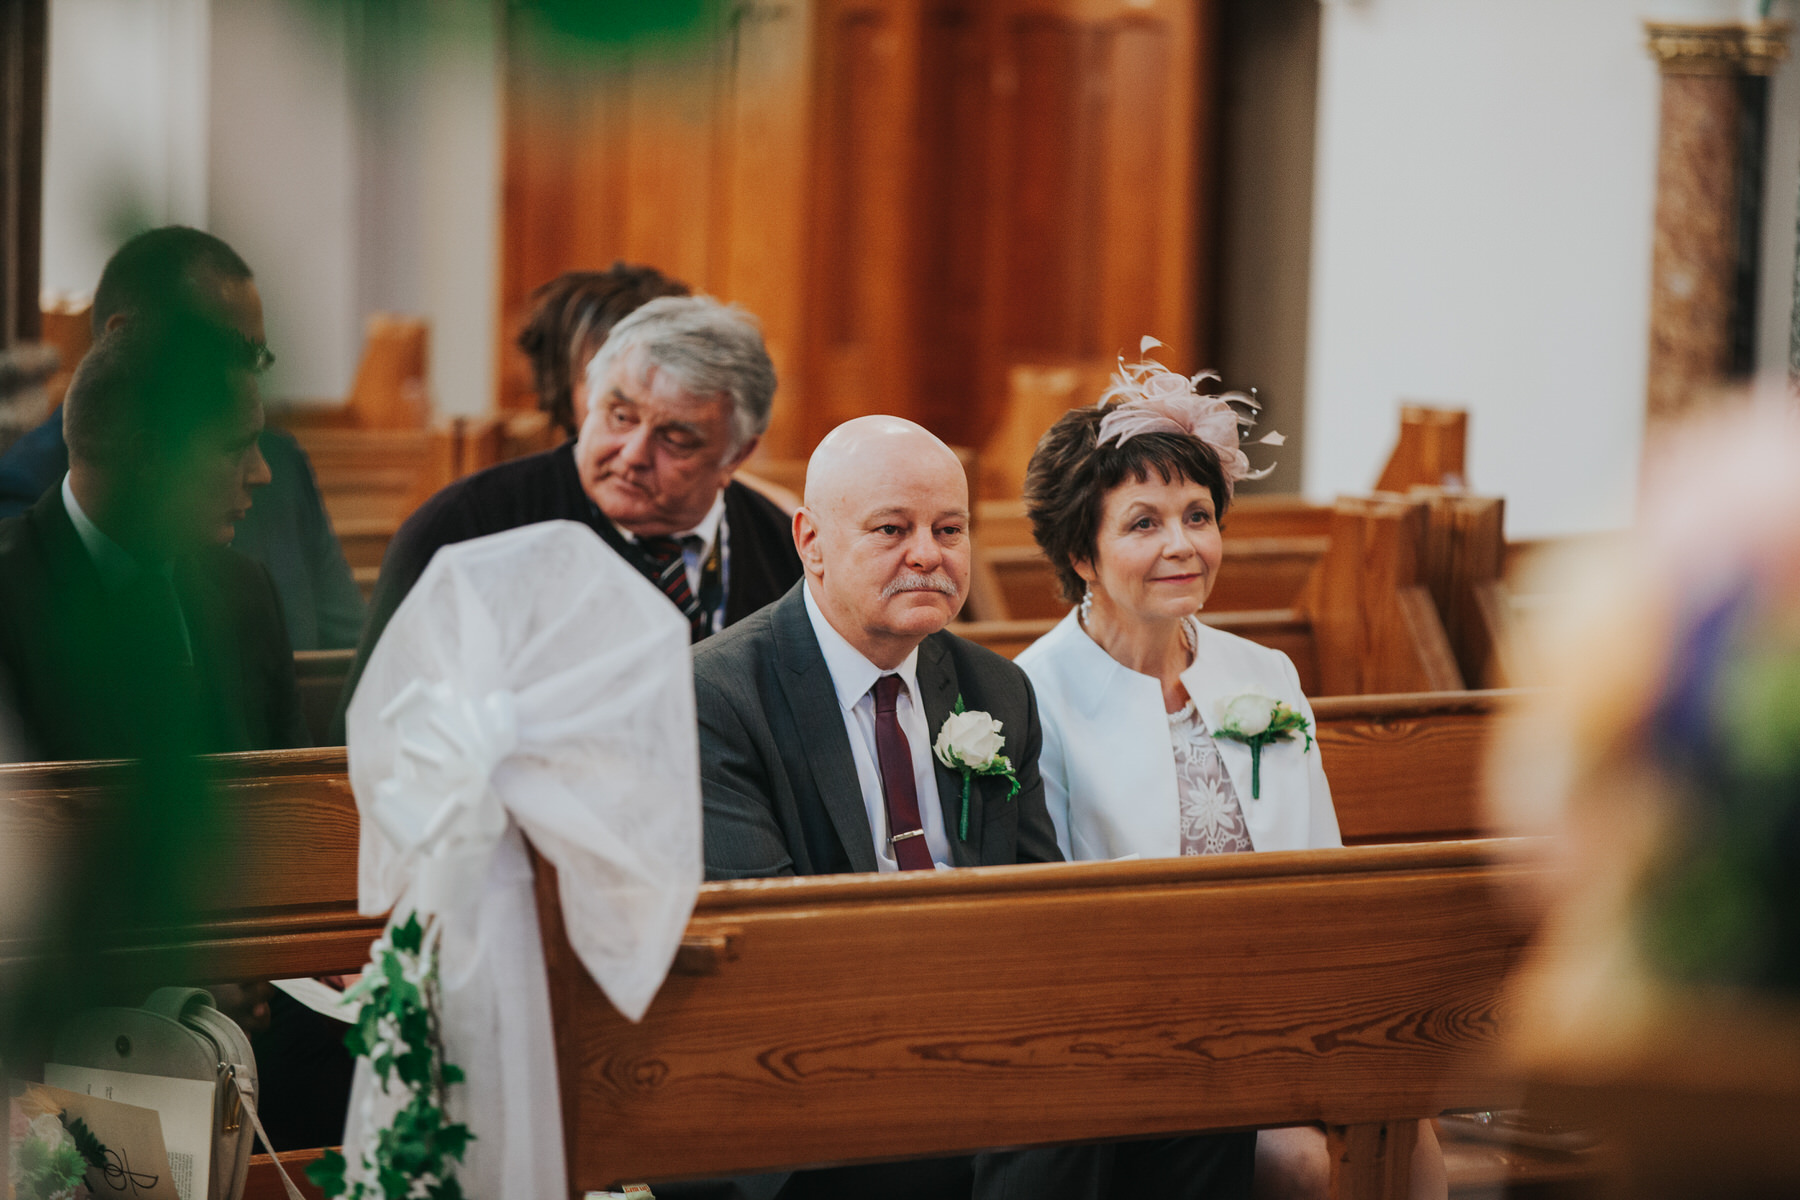 48 brides parents Church wedding.jpg